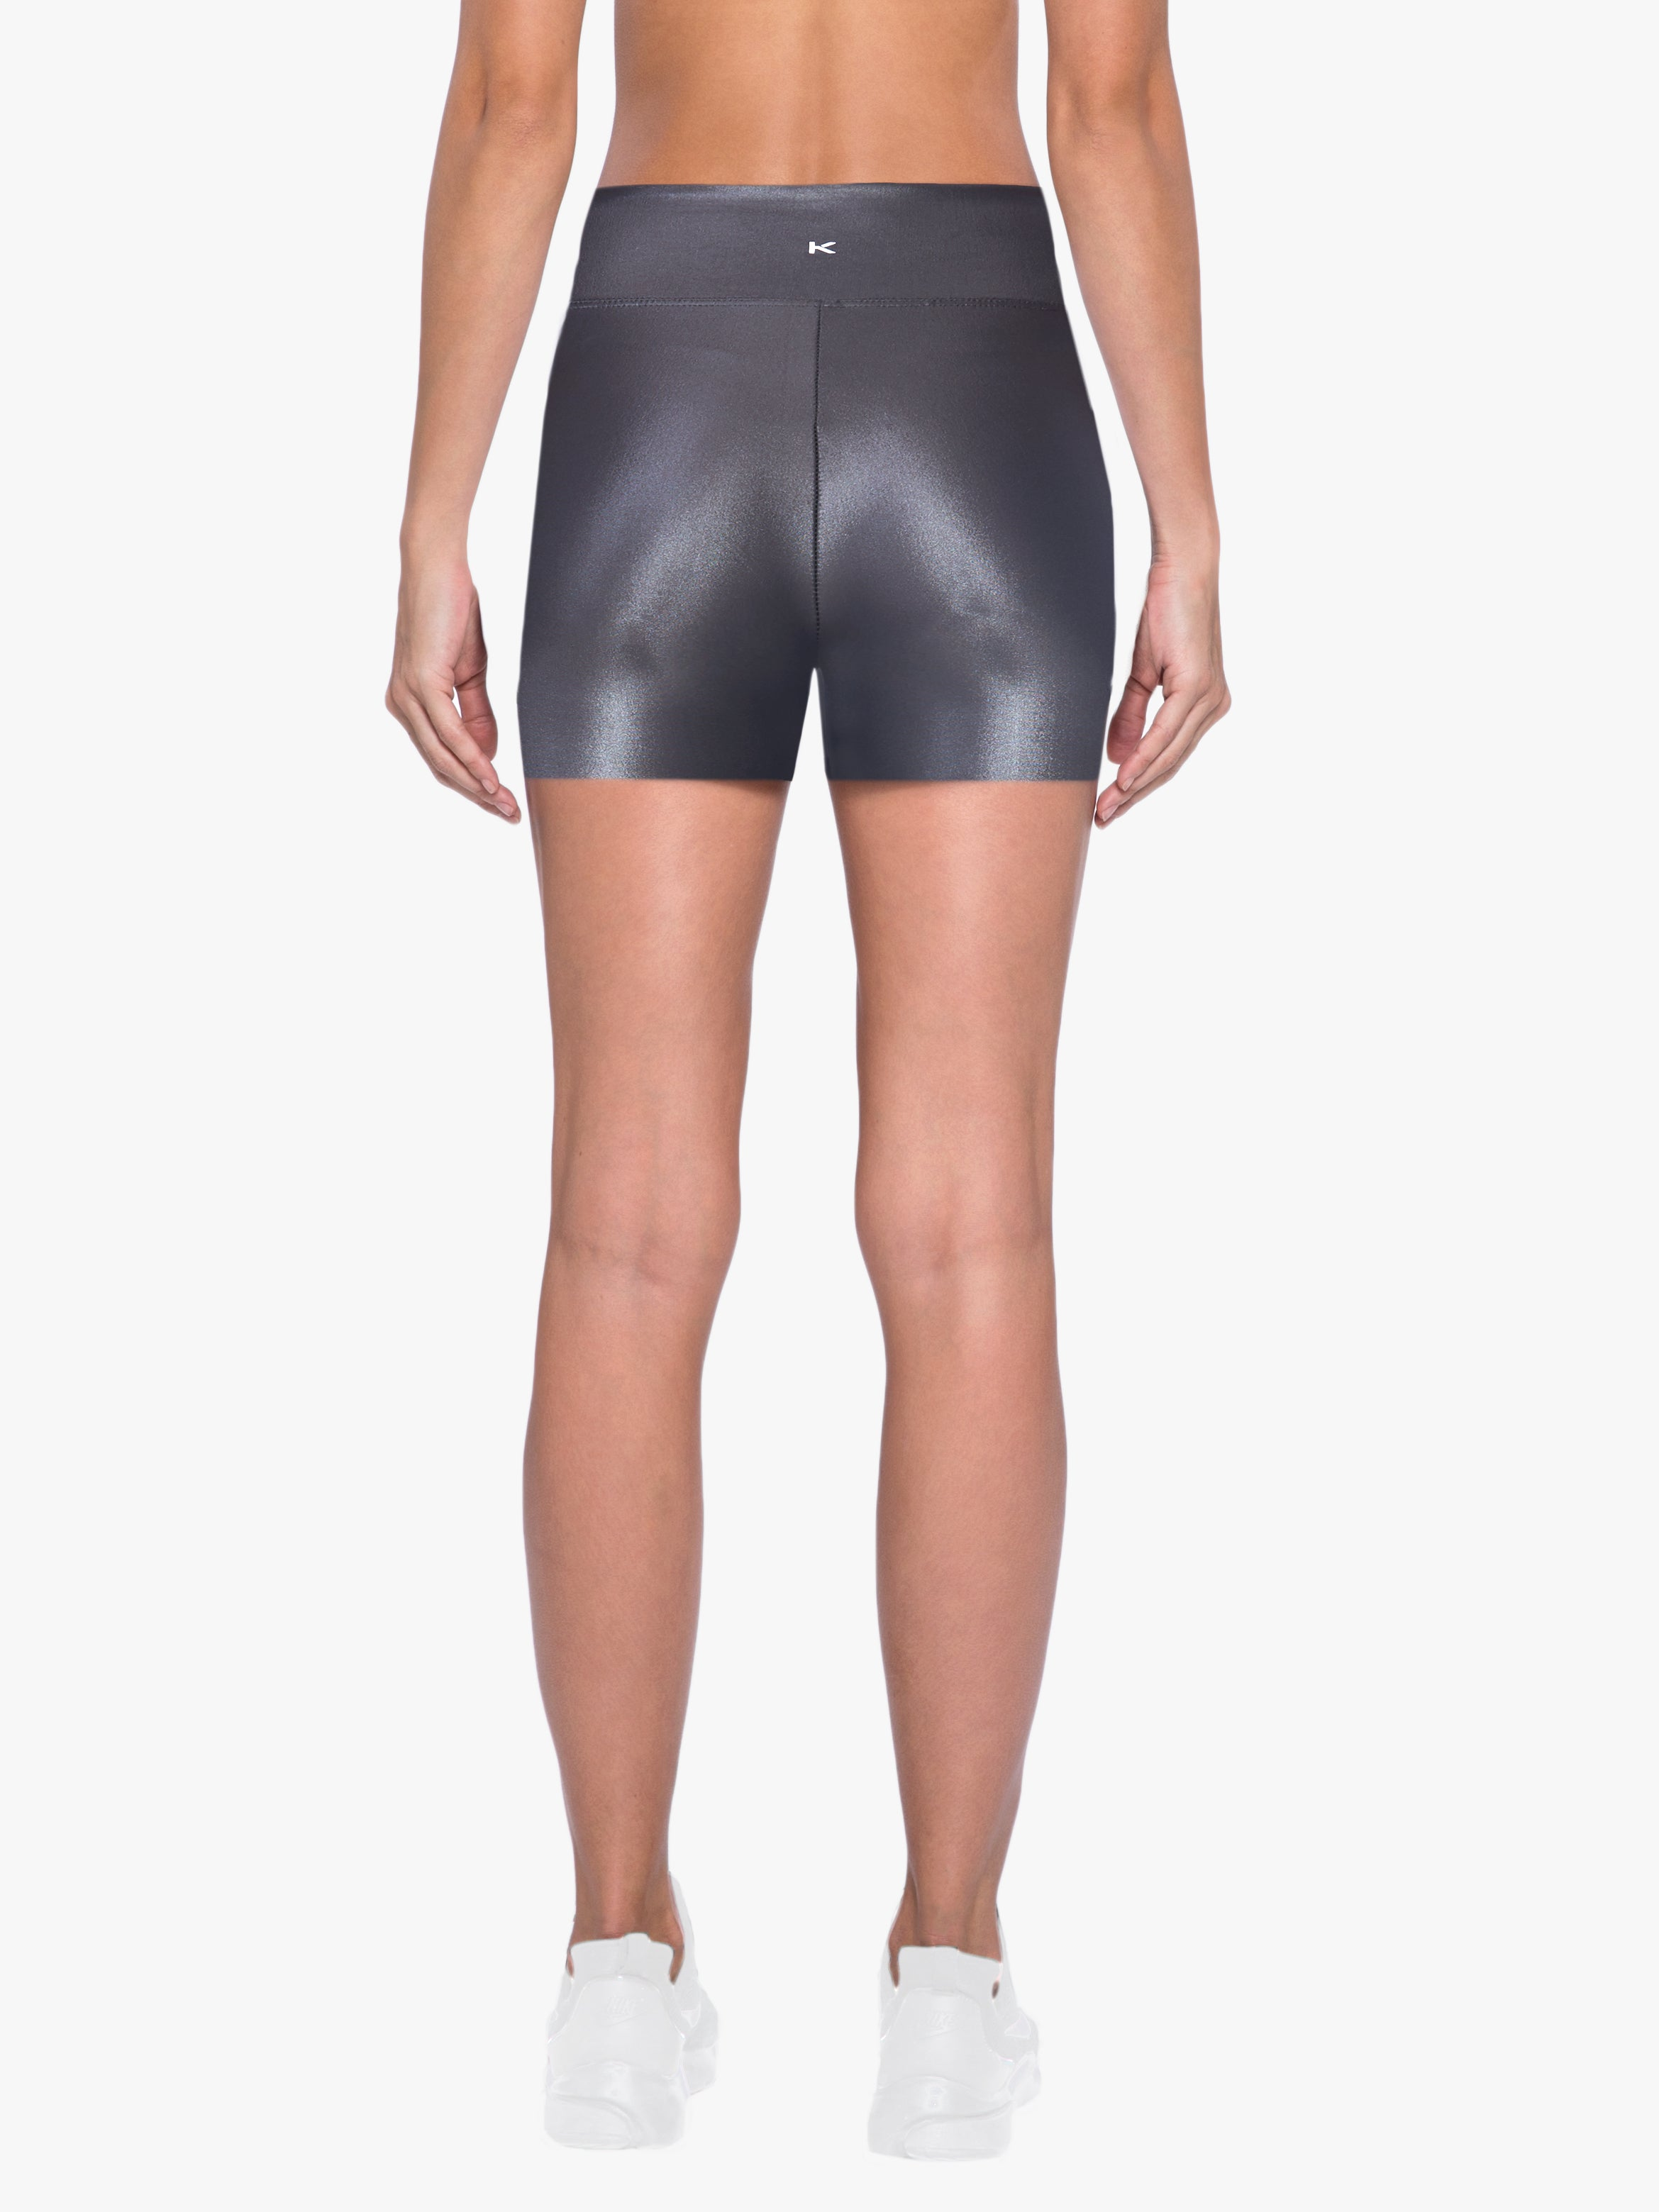 Slalom High Rise Infinity Shorts - Lead